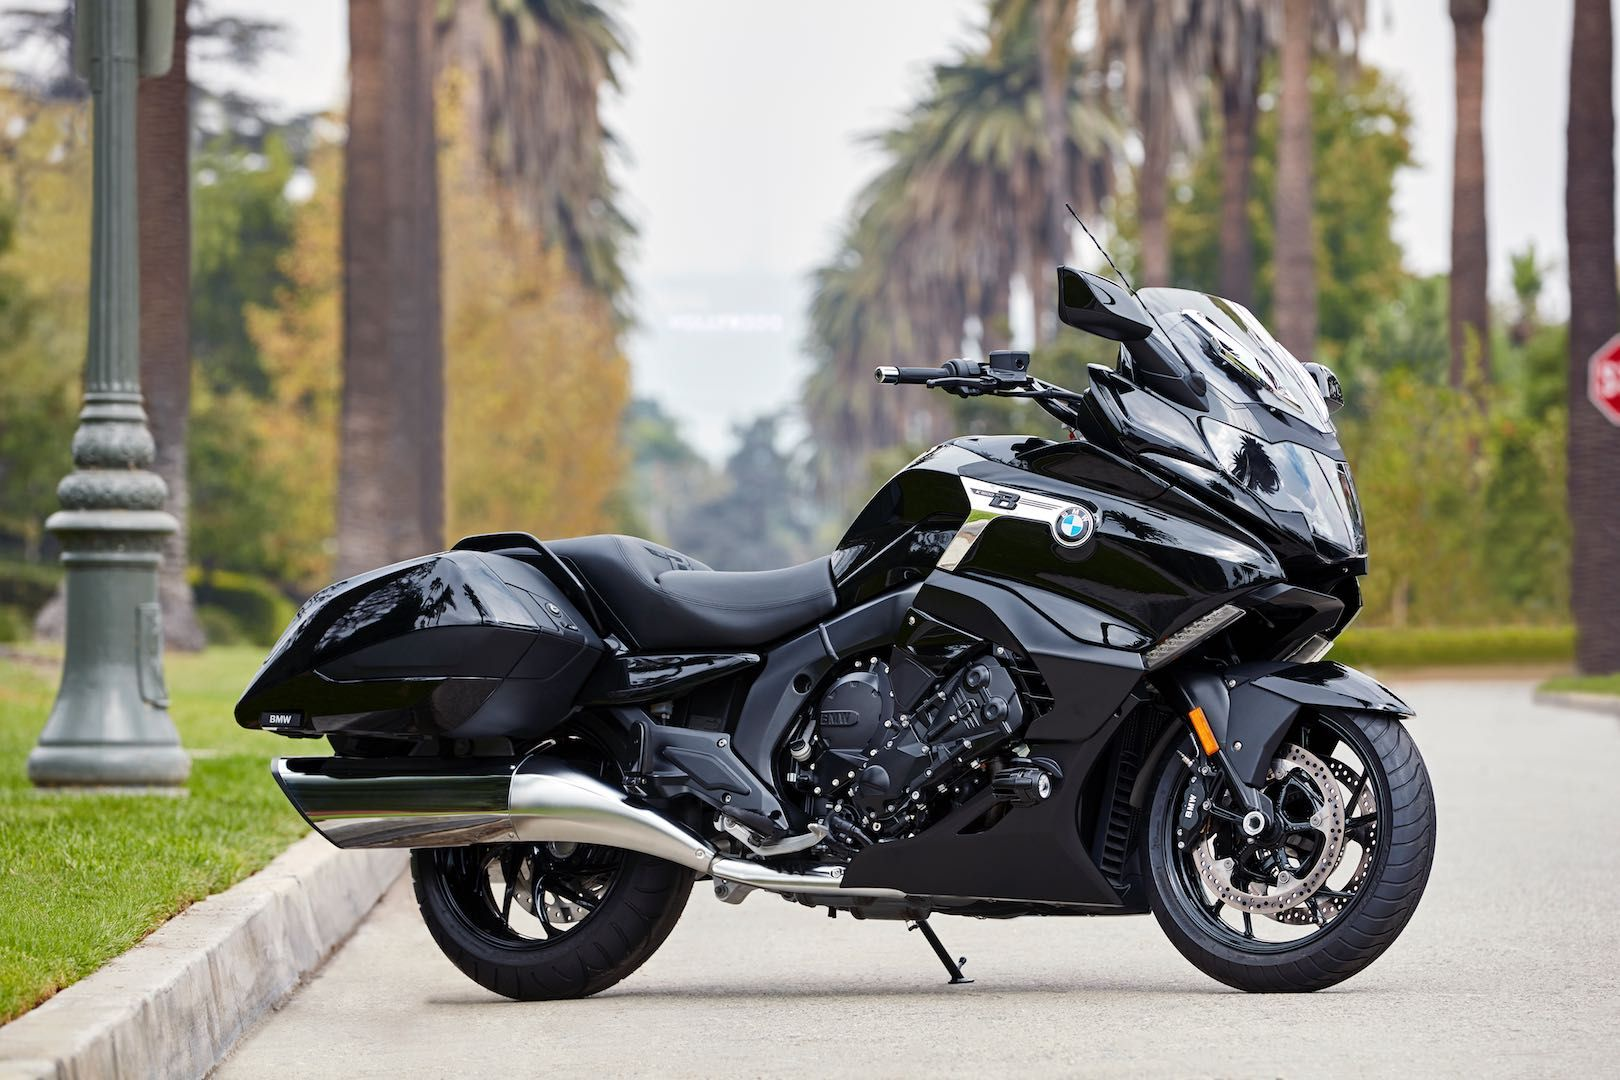 2018 Bmw K 1600 B Bagger Price Announced For Usa Bmw Vintage Bmw Motorcycle Touring Bmw Motorcycles